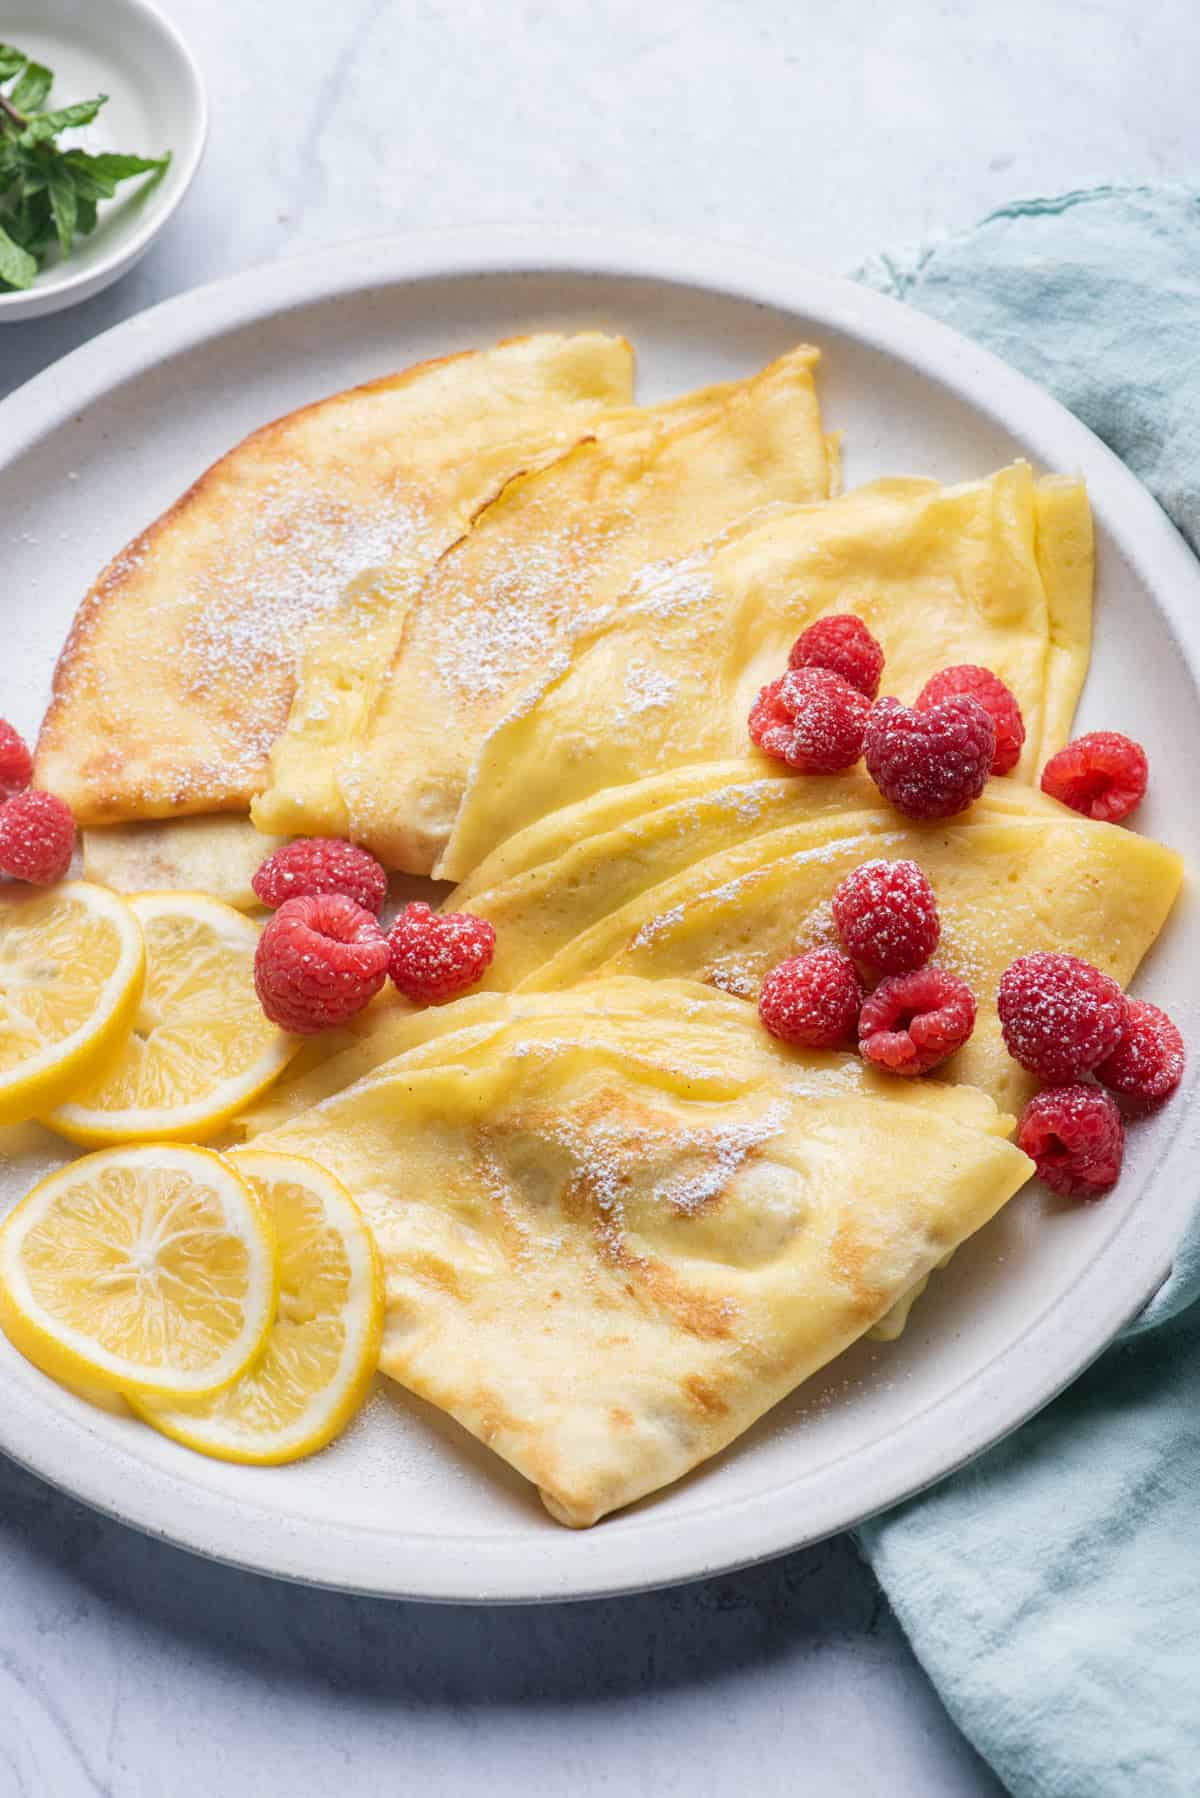 Close up of crepes on plate with raspberries and lemon